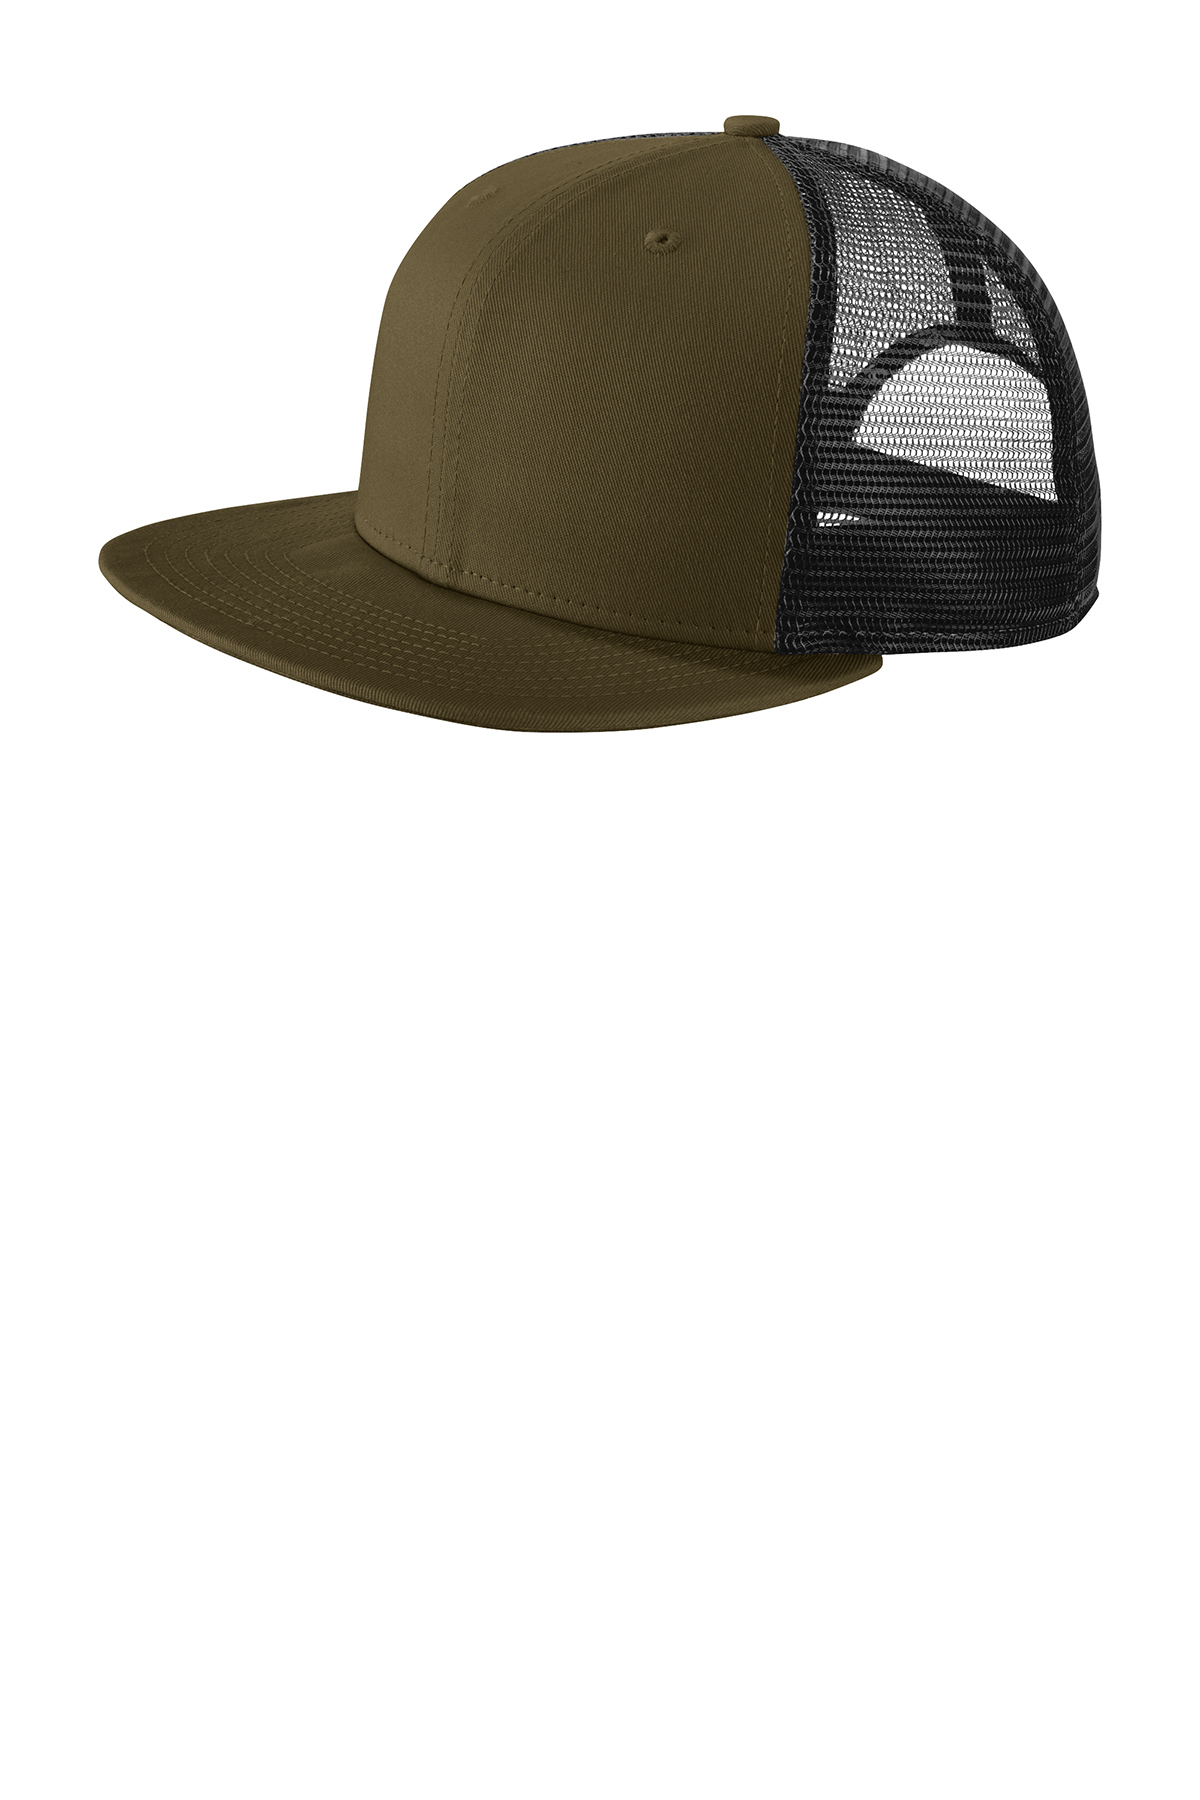 0bd3dd44909fb New Era® Original Fit Snapback Trucker Cap | Mesh Back | Caps ...